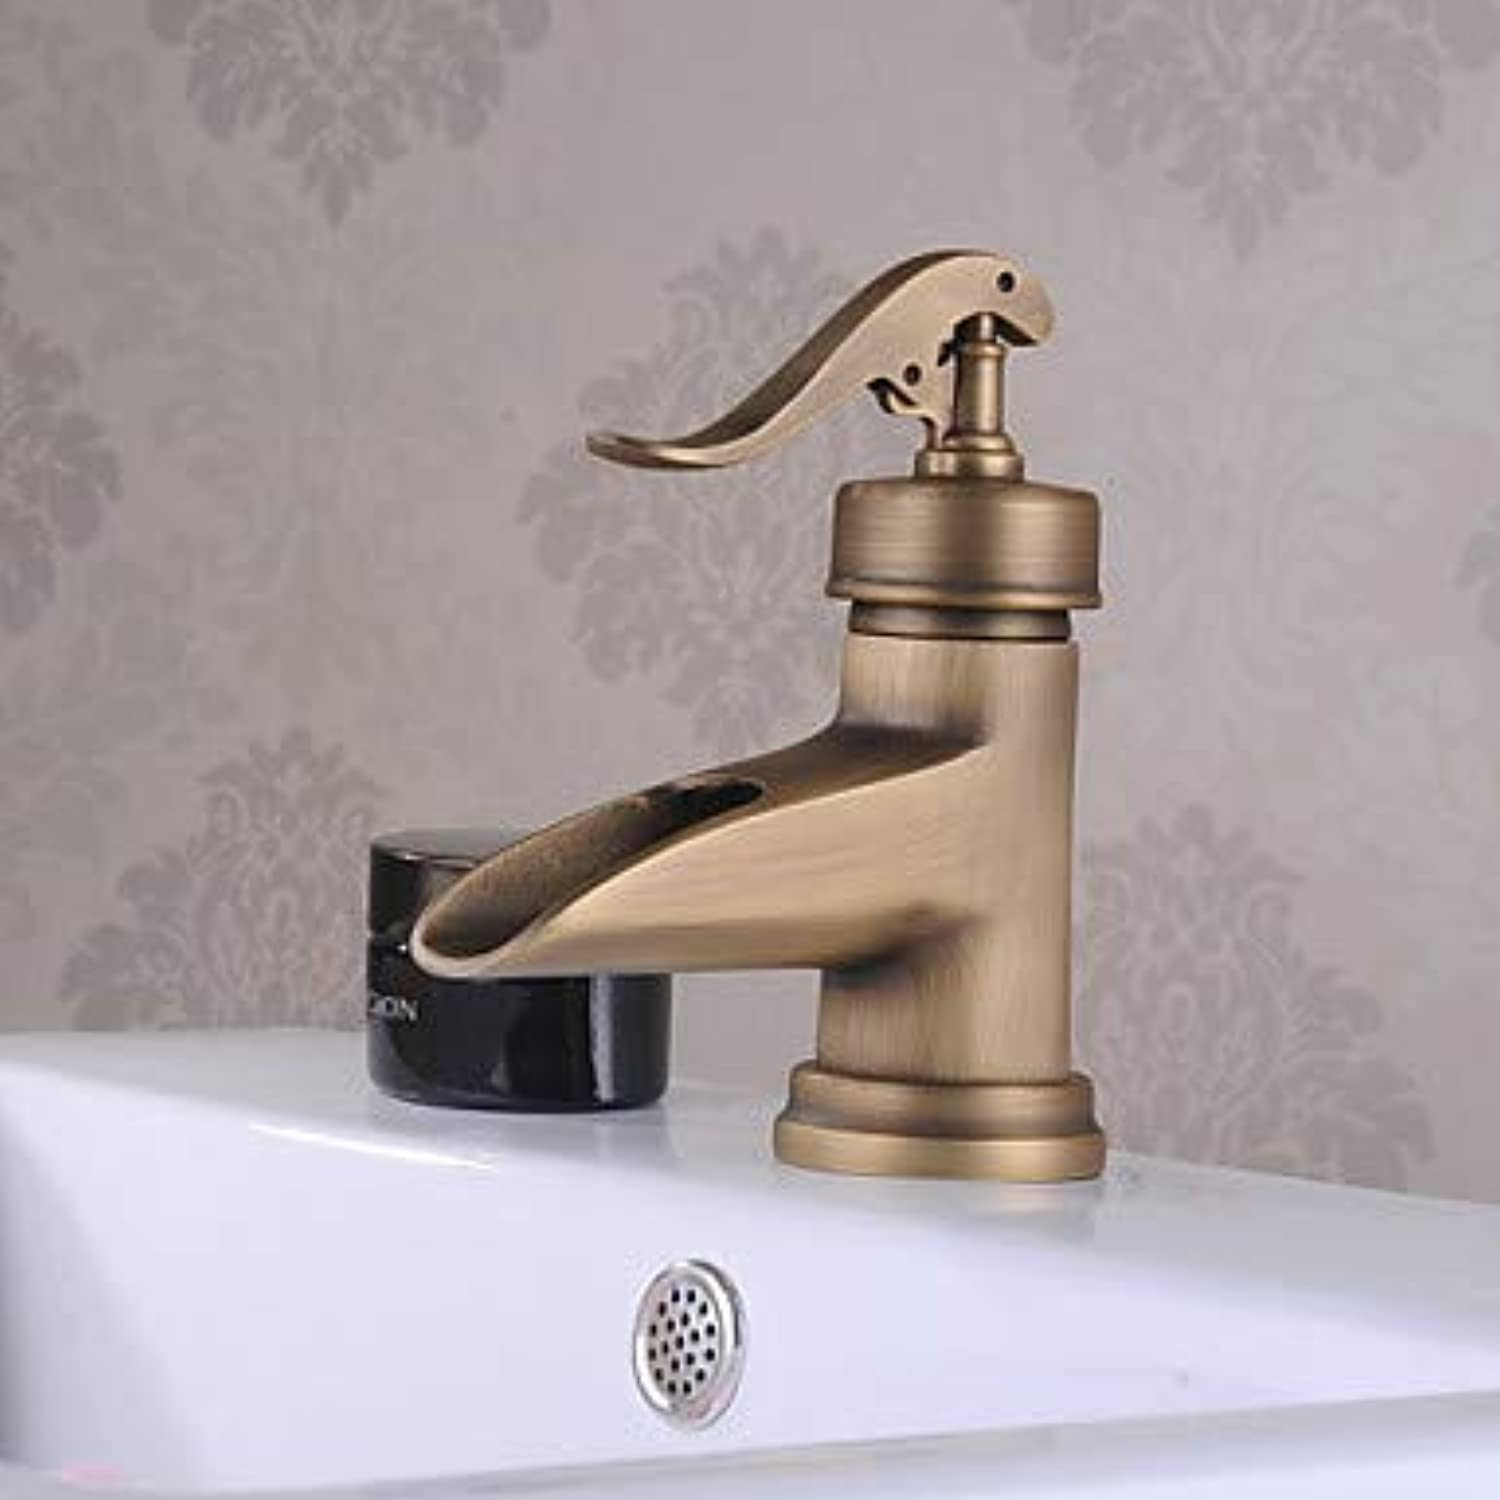 Mangeoo Traditional Deck Mounted Ceramic Valve Single Handle One Hole Chrome, Bathroom Sink Faucet